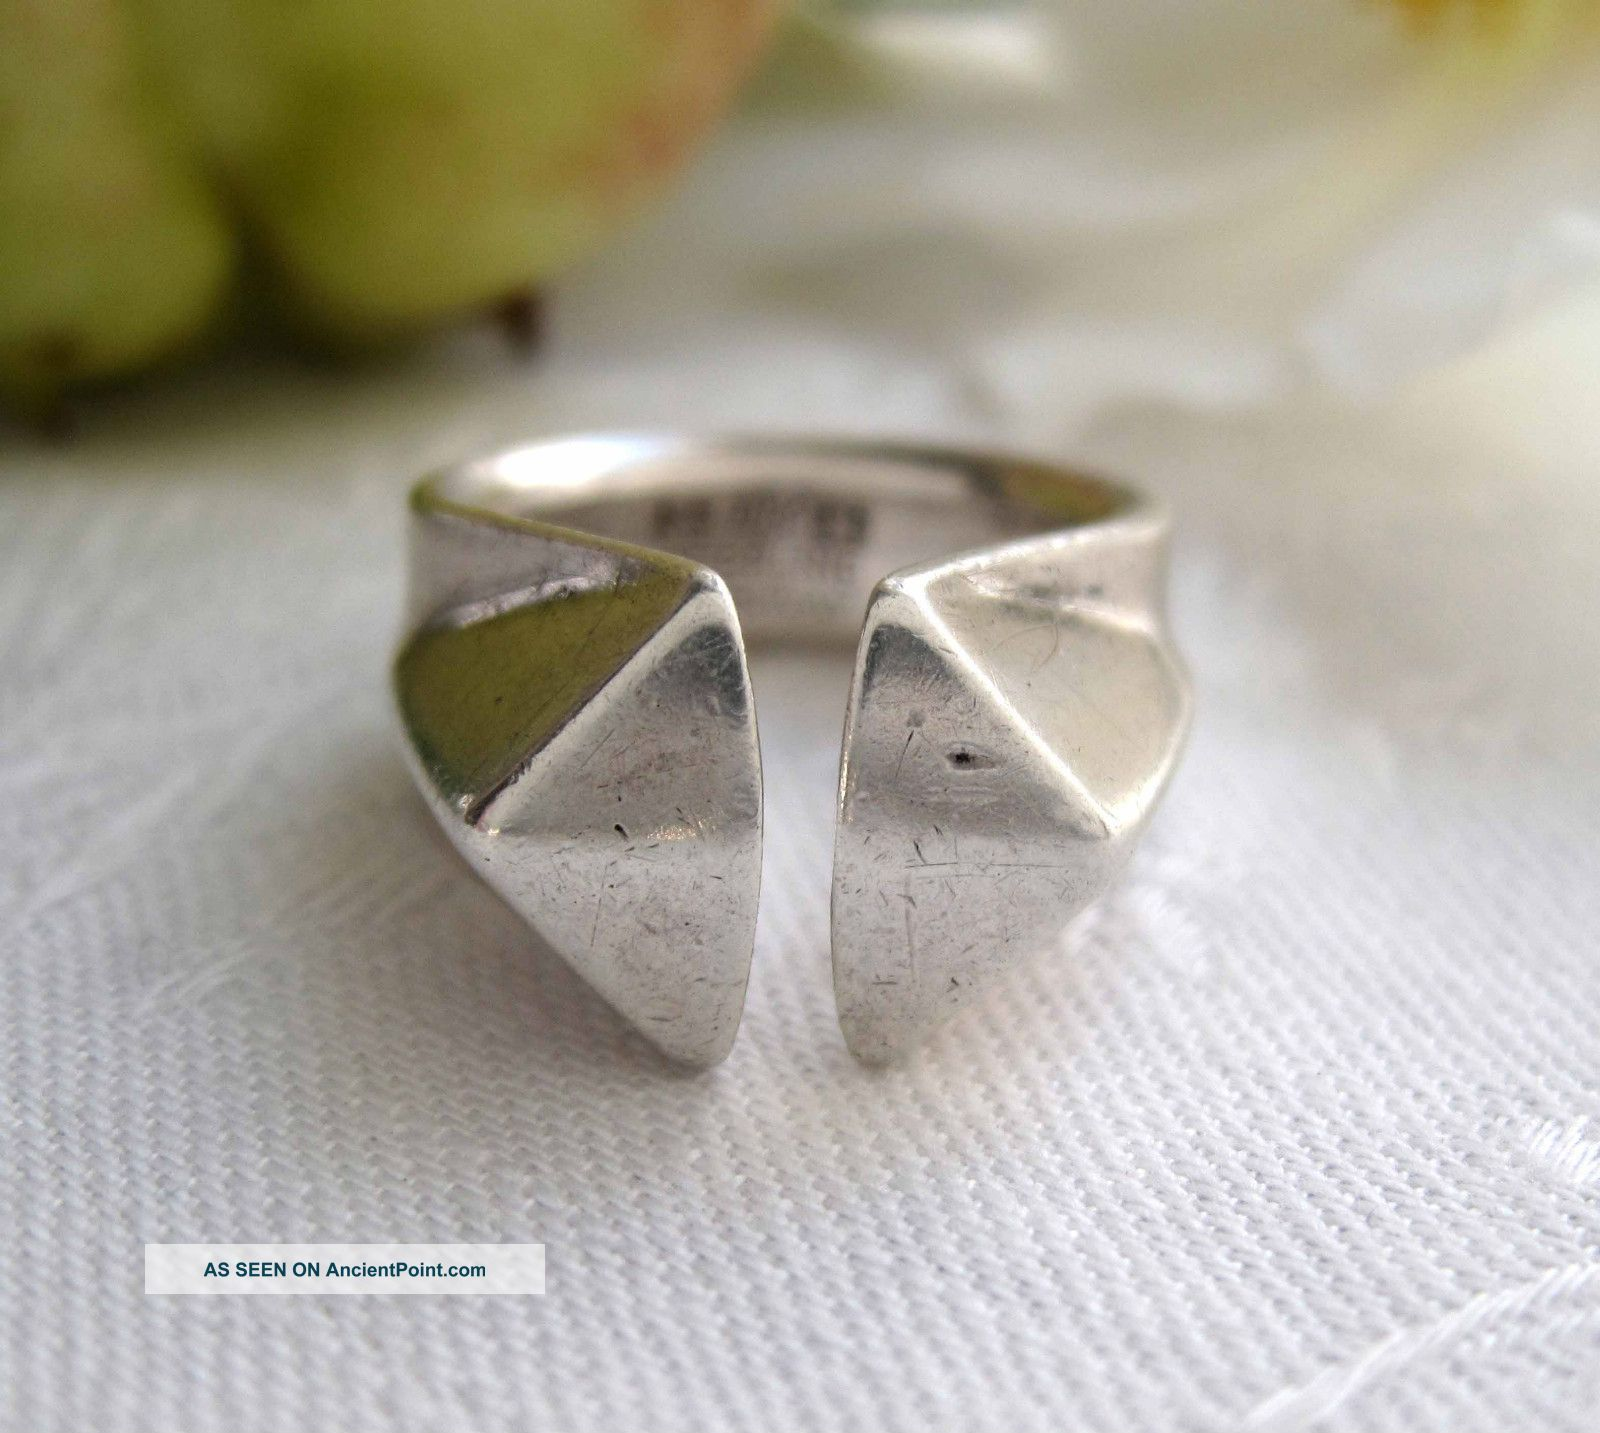 Anna Greta Eker,  Norway,  Vintage Silver Prism,  Prisme Ring,  1964,  12.  7 G Uncategorized photo